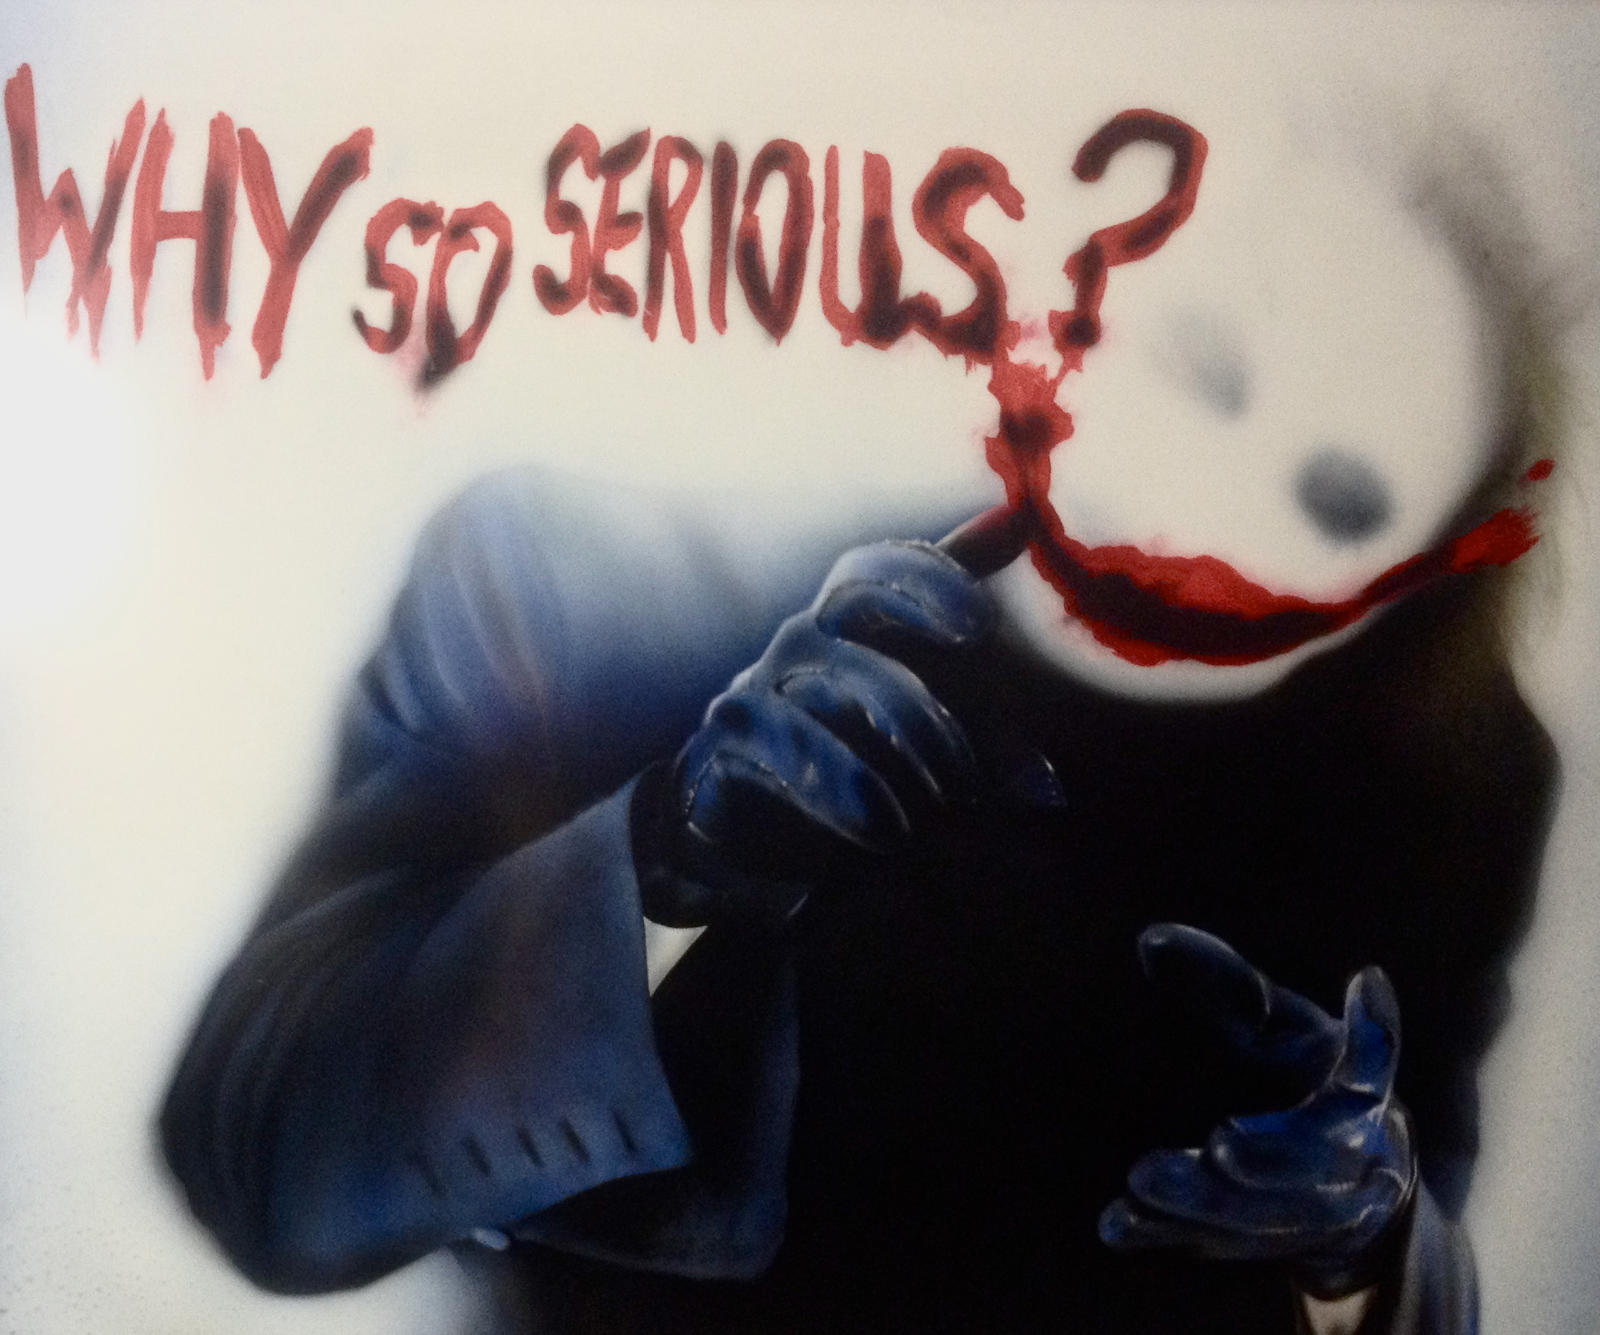 why so serious by getslicked on deviantart